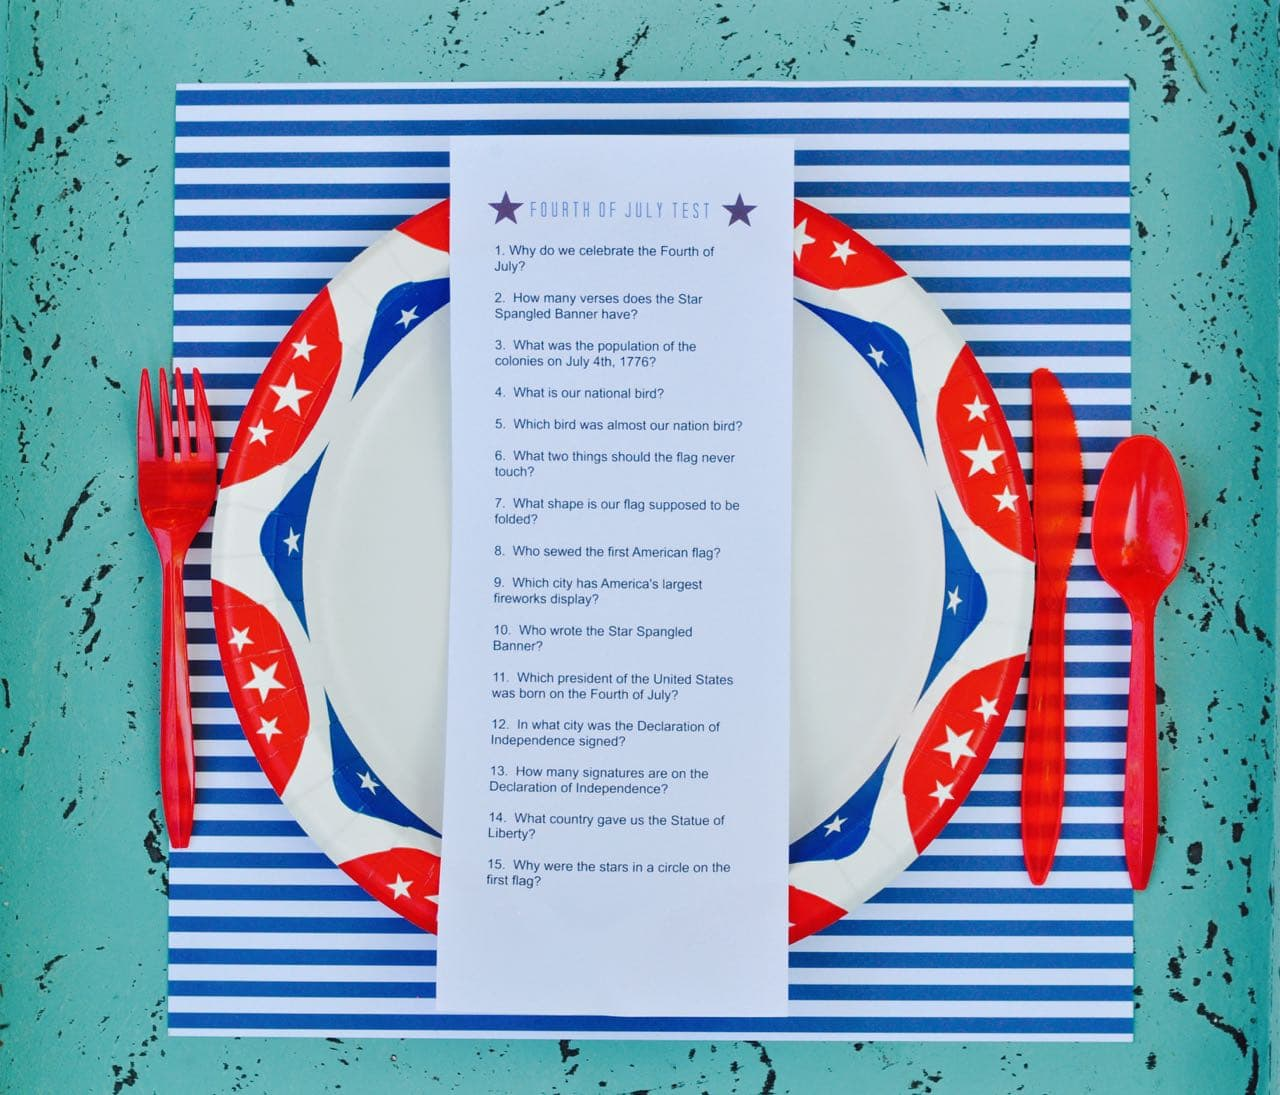 Fourth of July trivia on plate with utensils